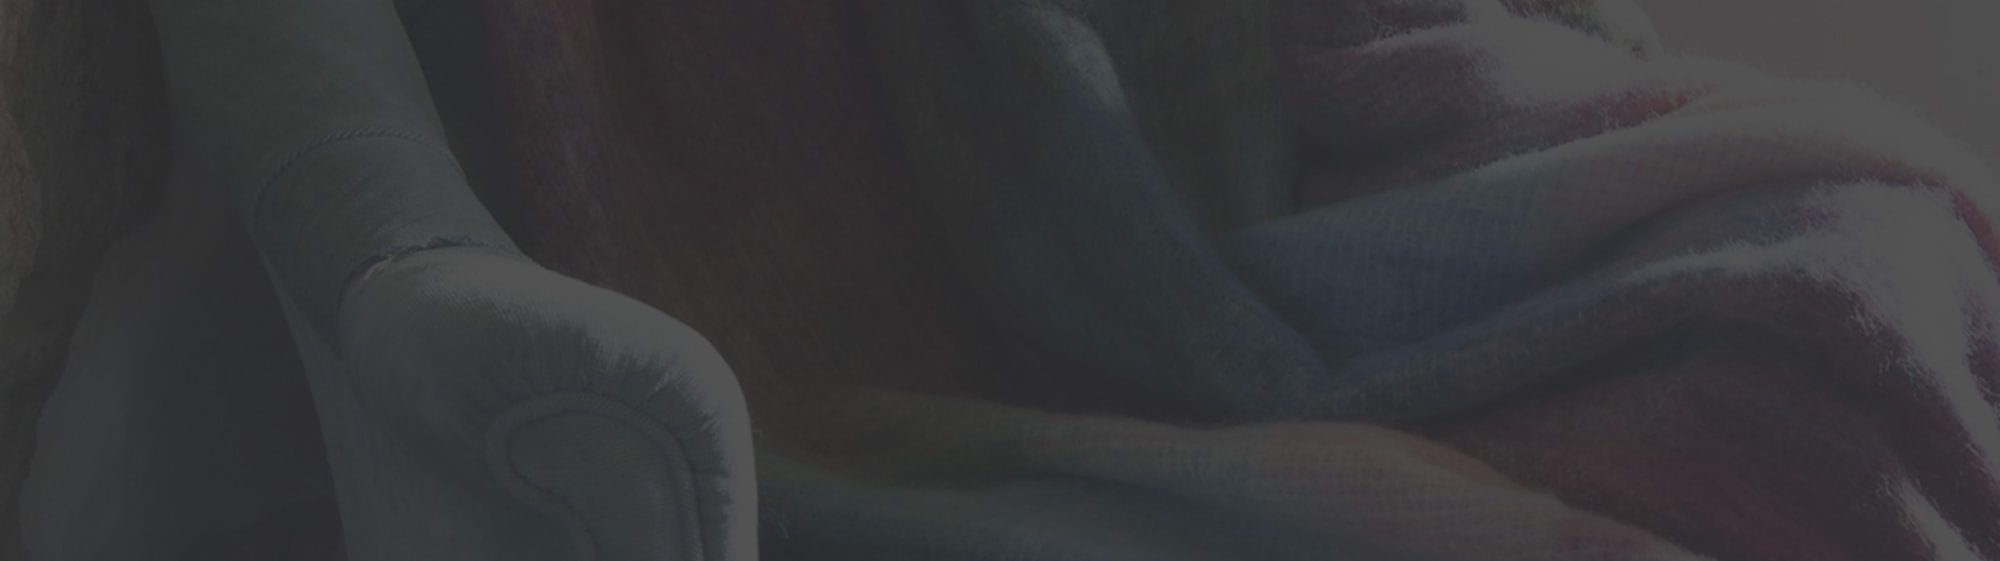 the_wool_company_banner